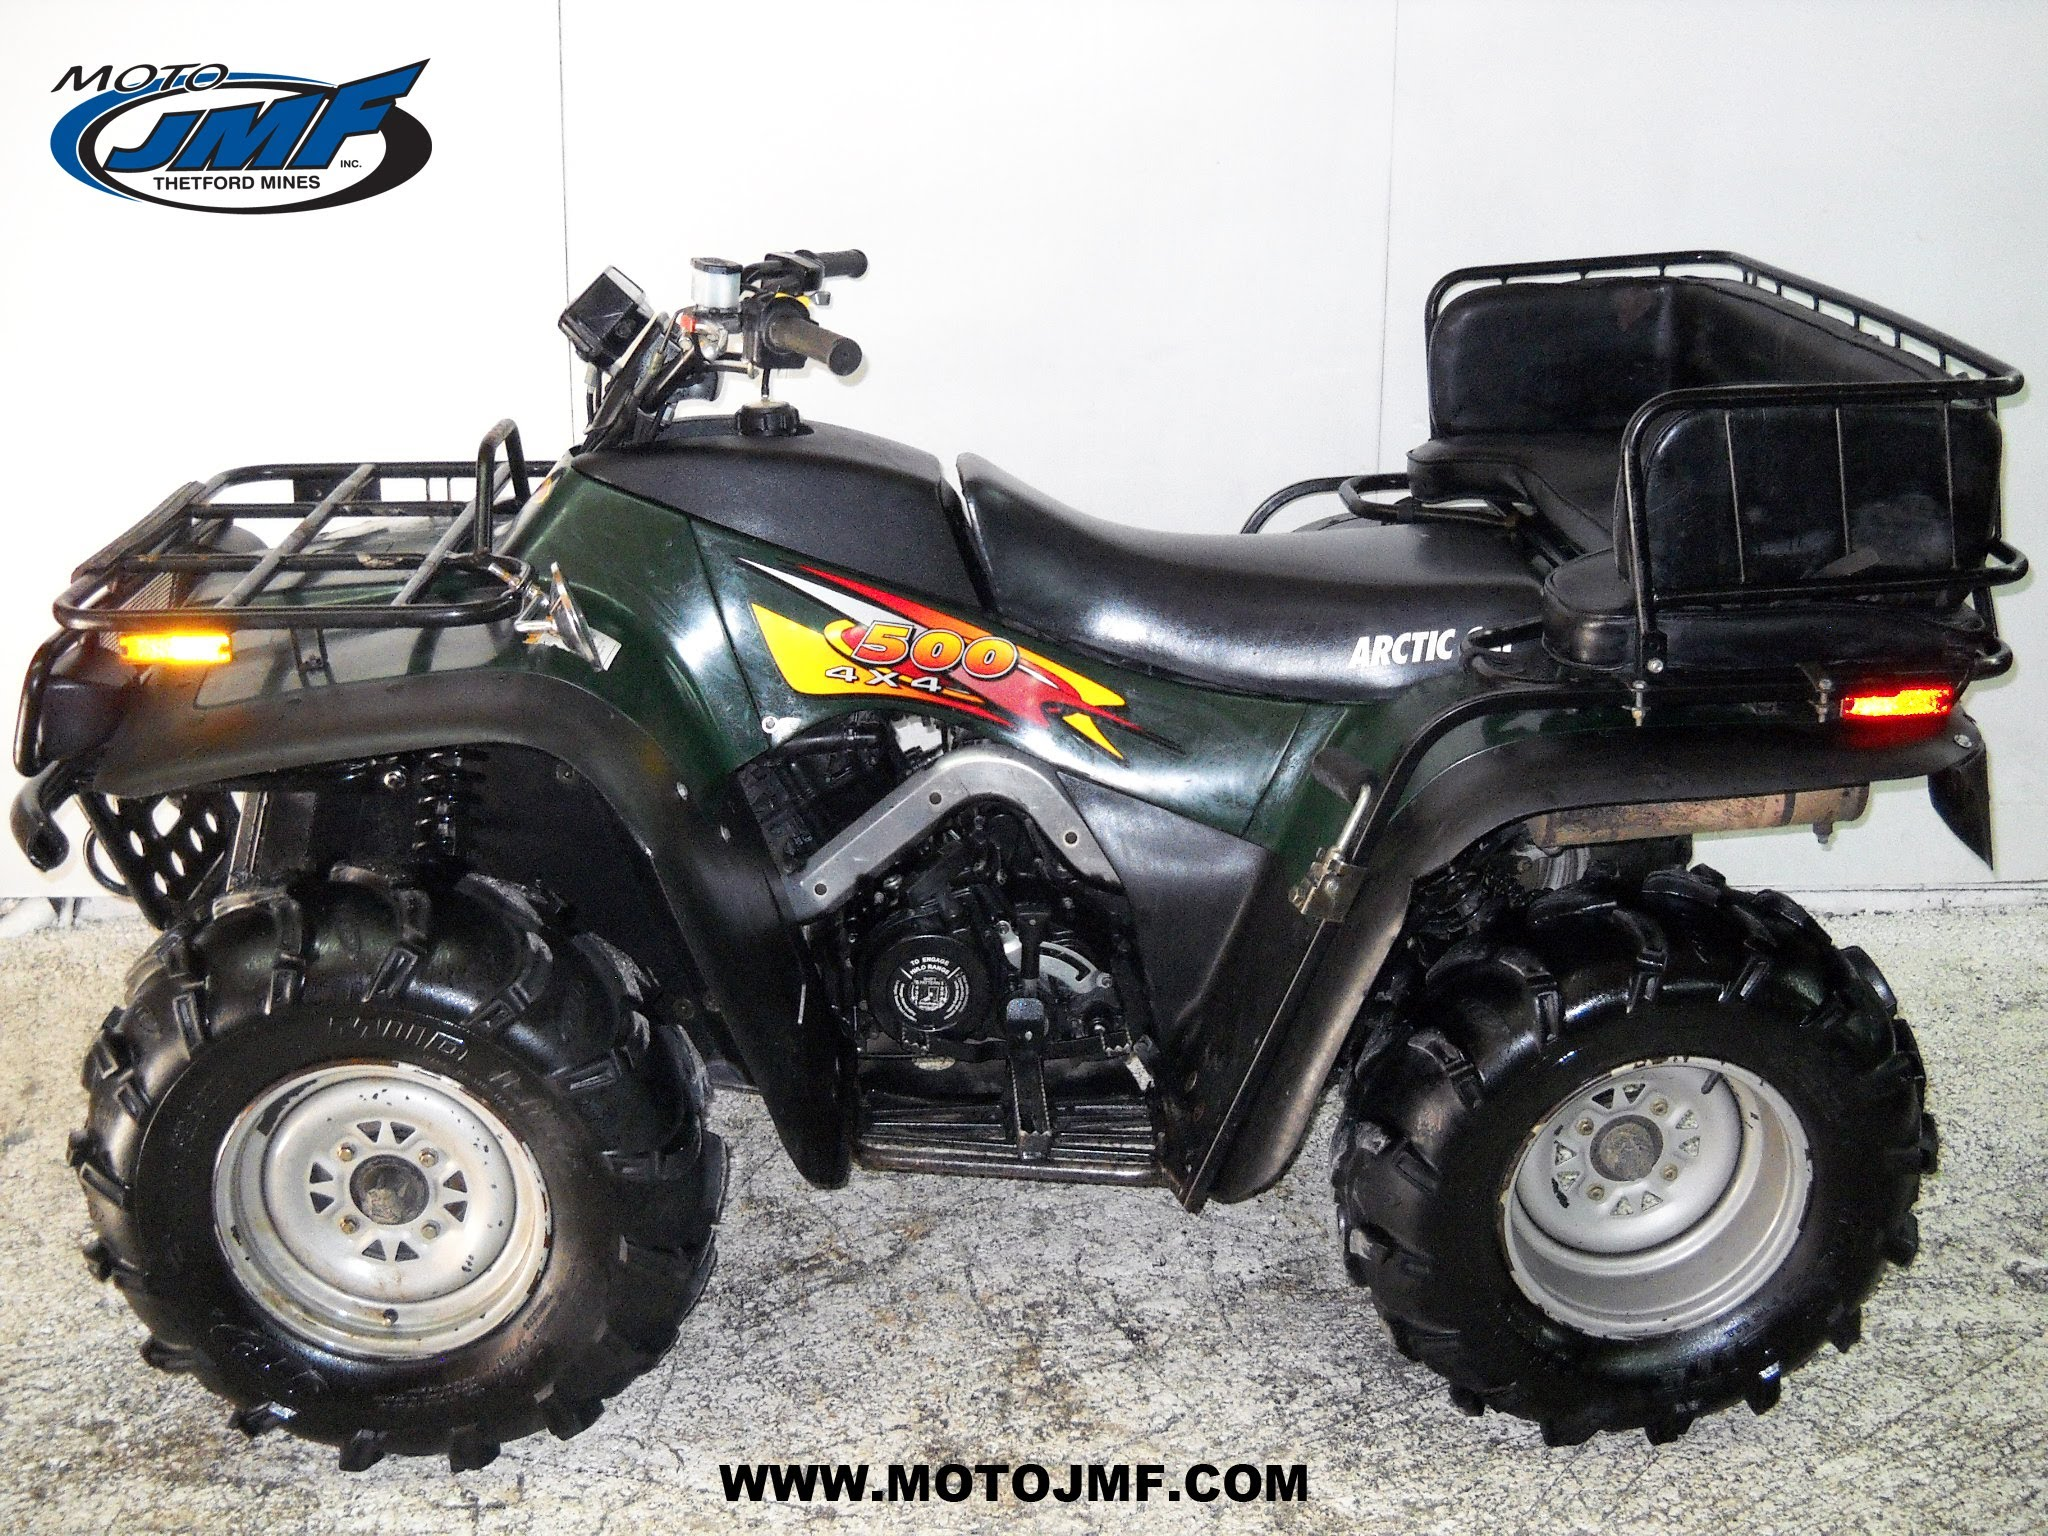 Wiring Diagram With Schematics For A 1998 400 4x4 Arctic Cat Atv Jet Ski Diagrams Electrical 300